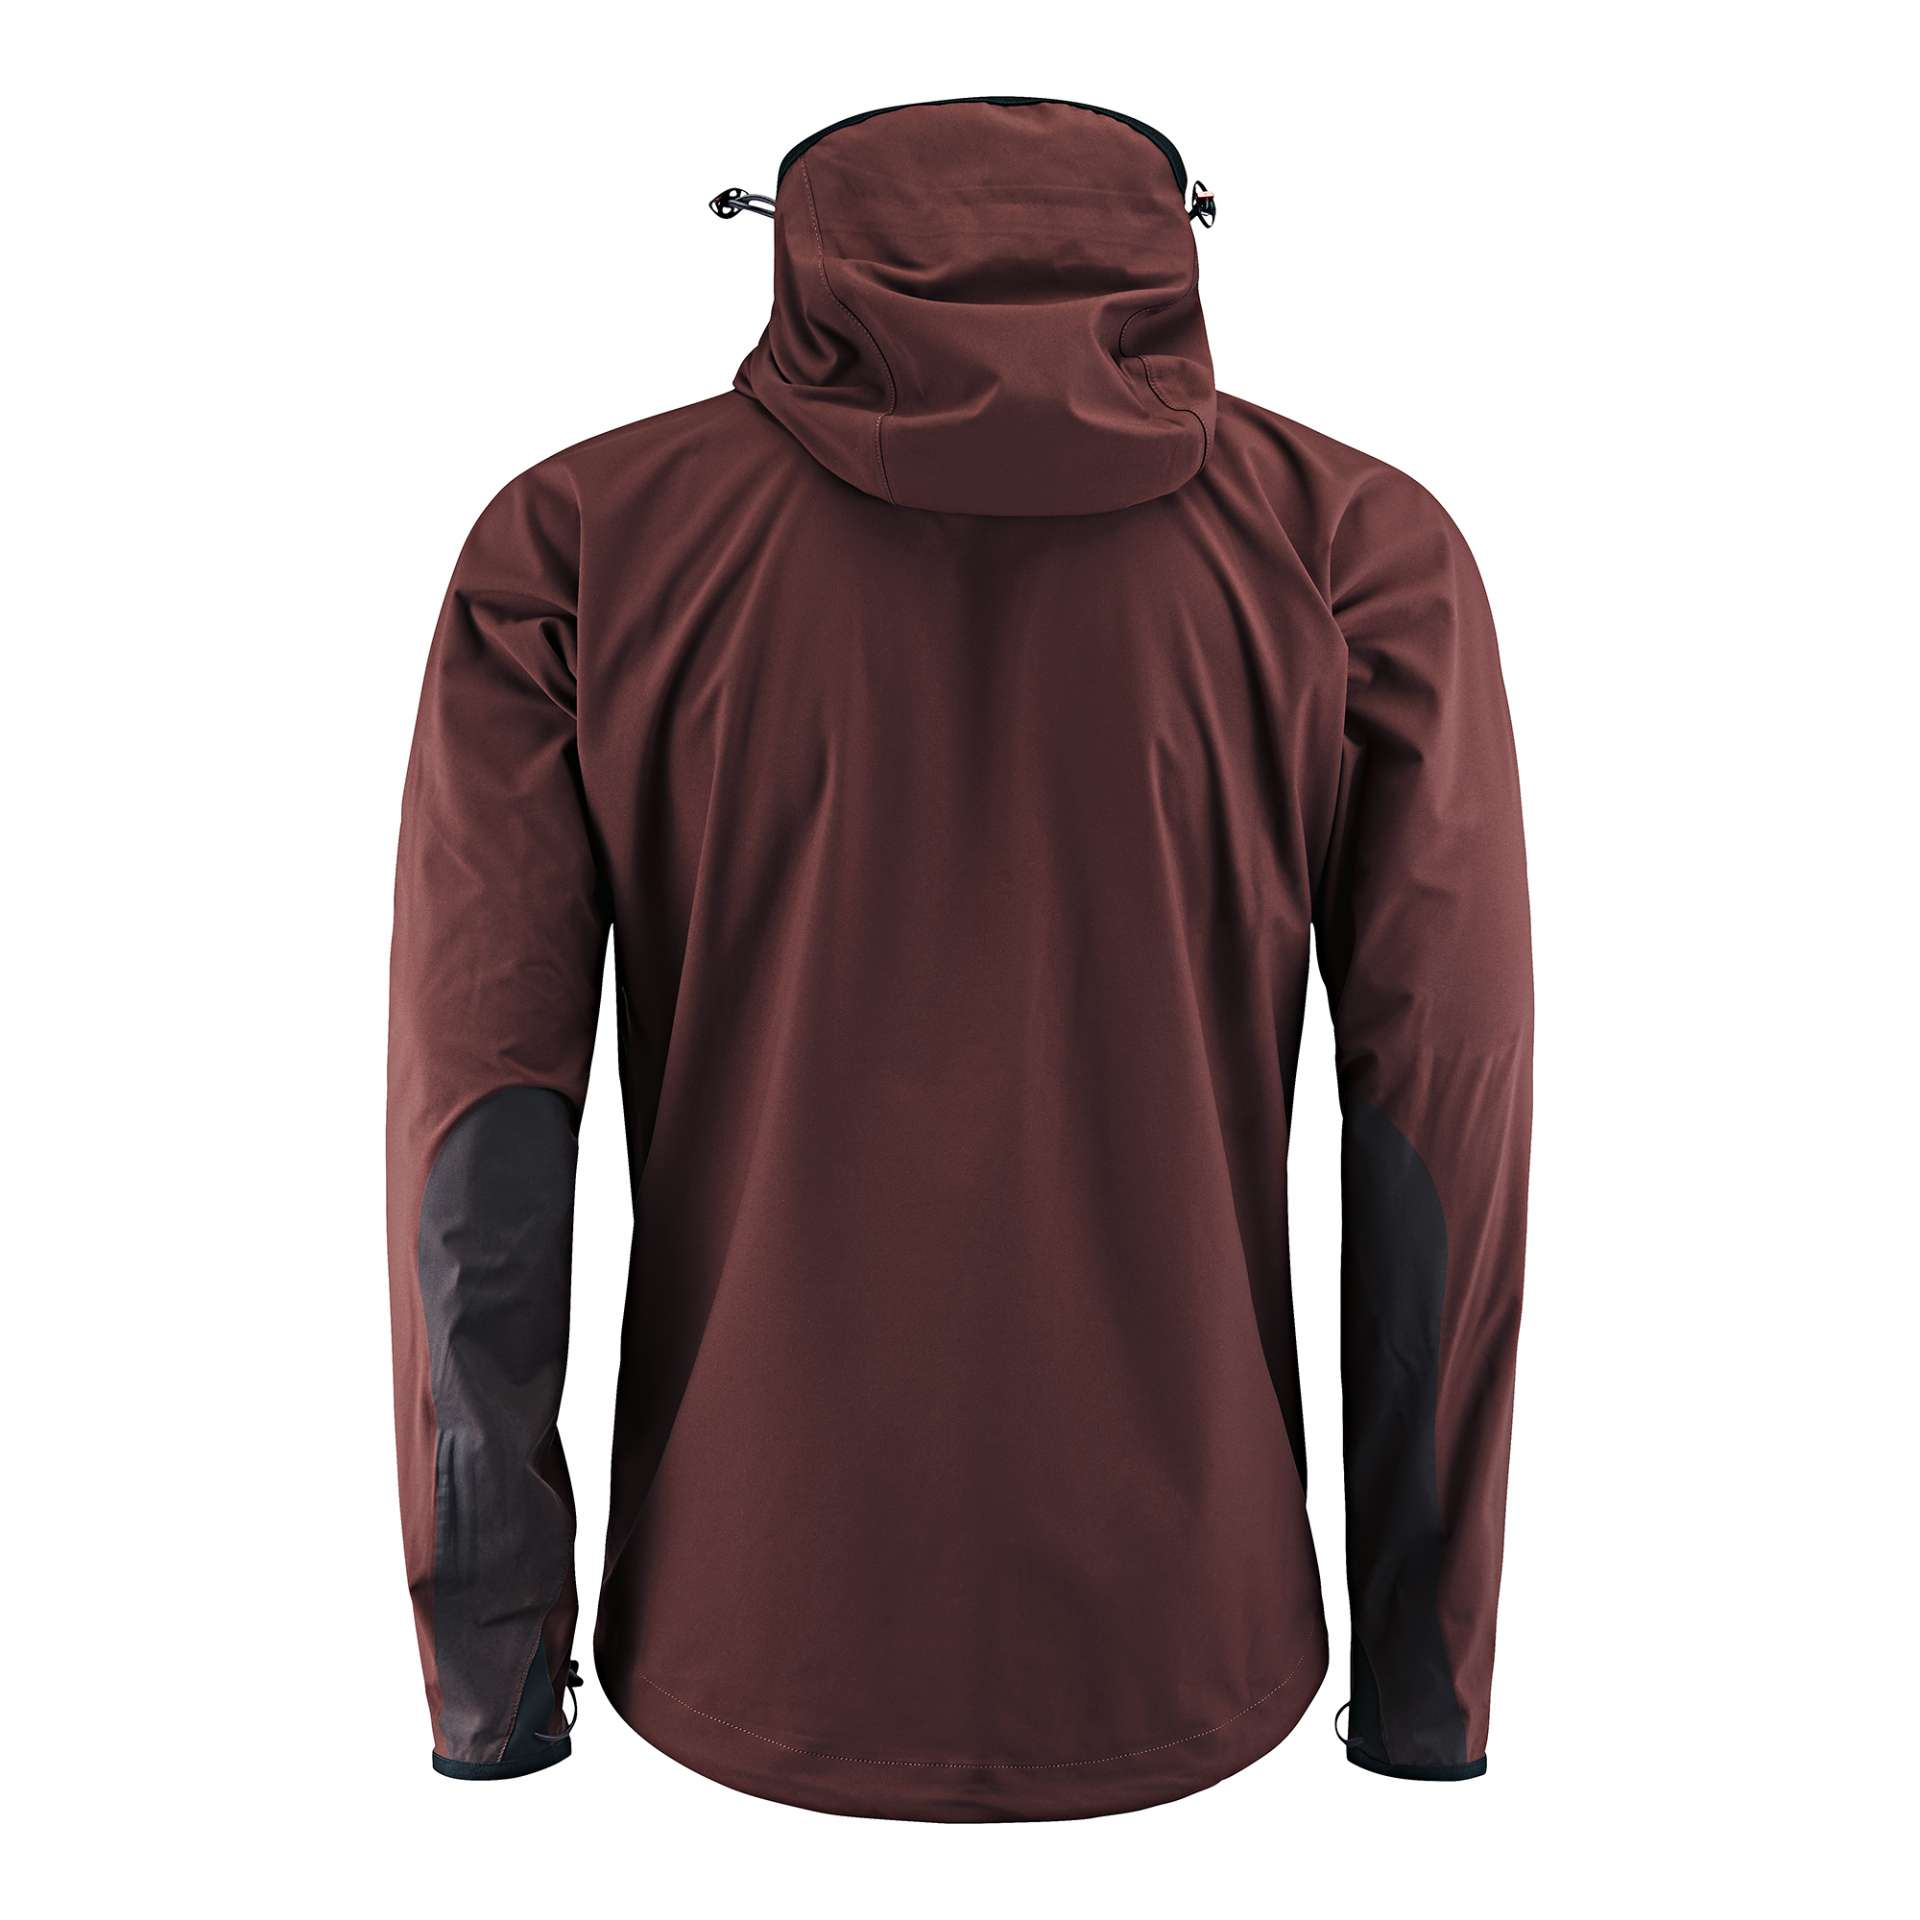 Product image of Men's Allgrön Jacket